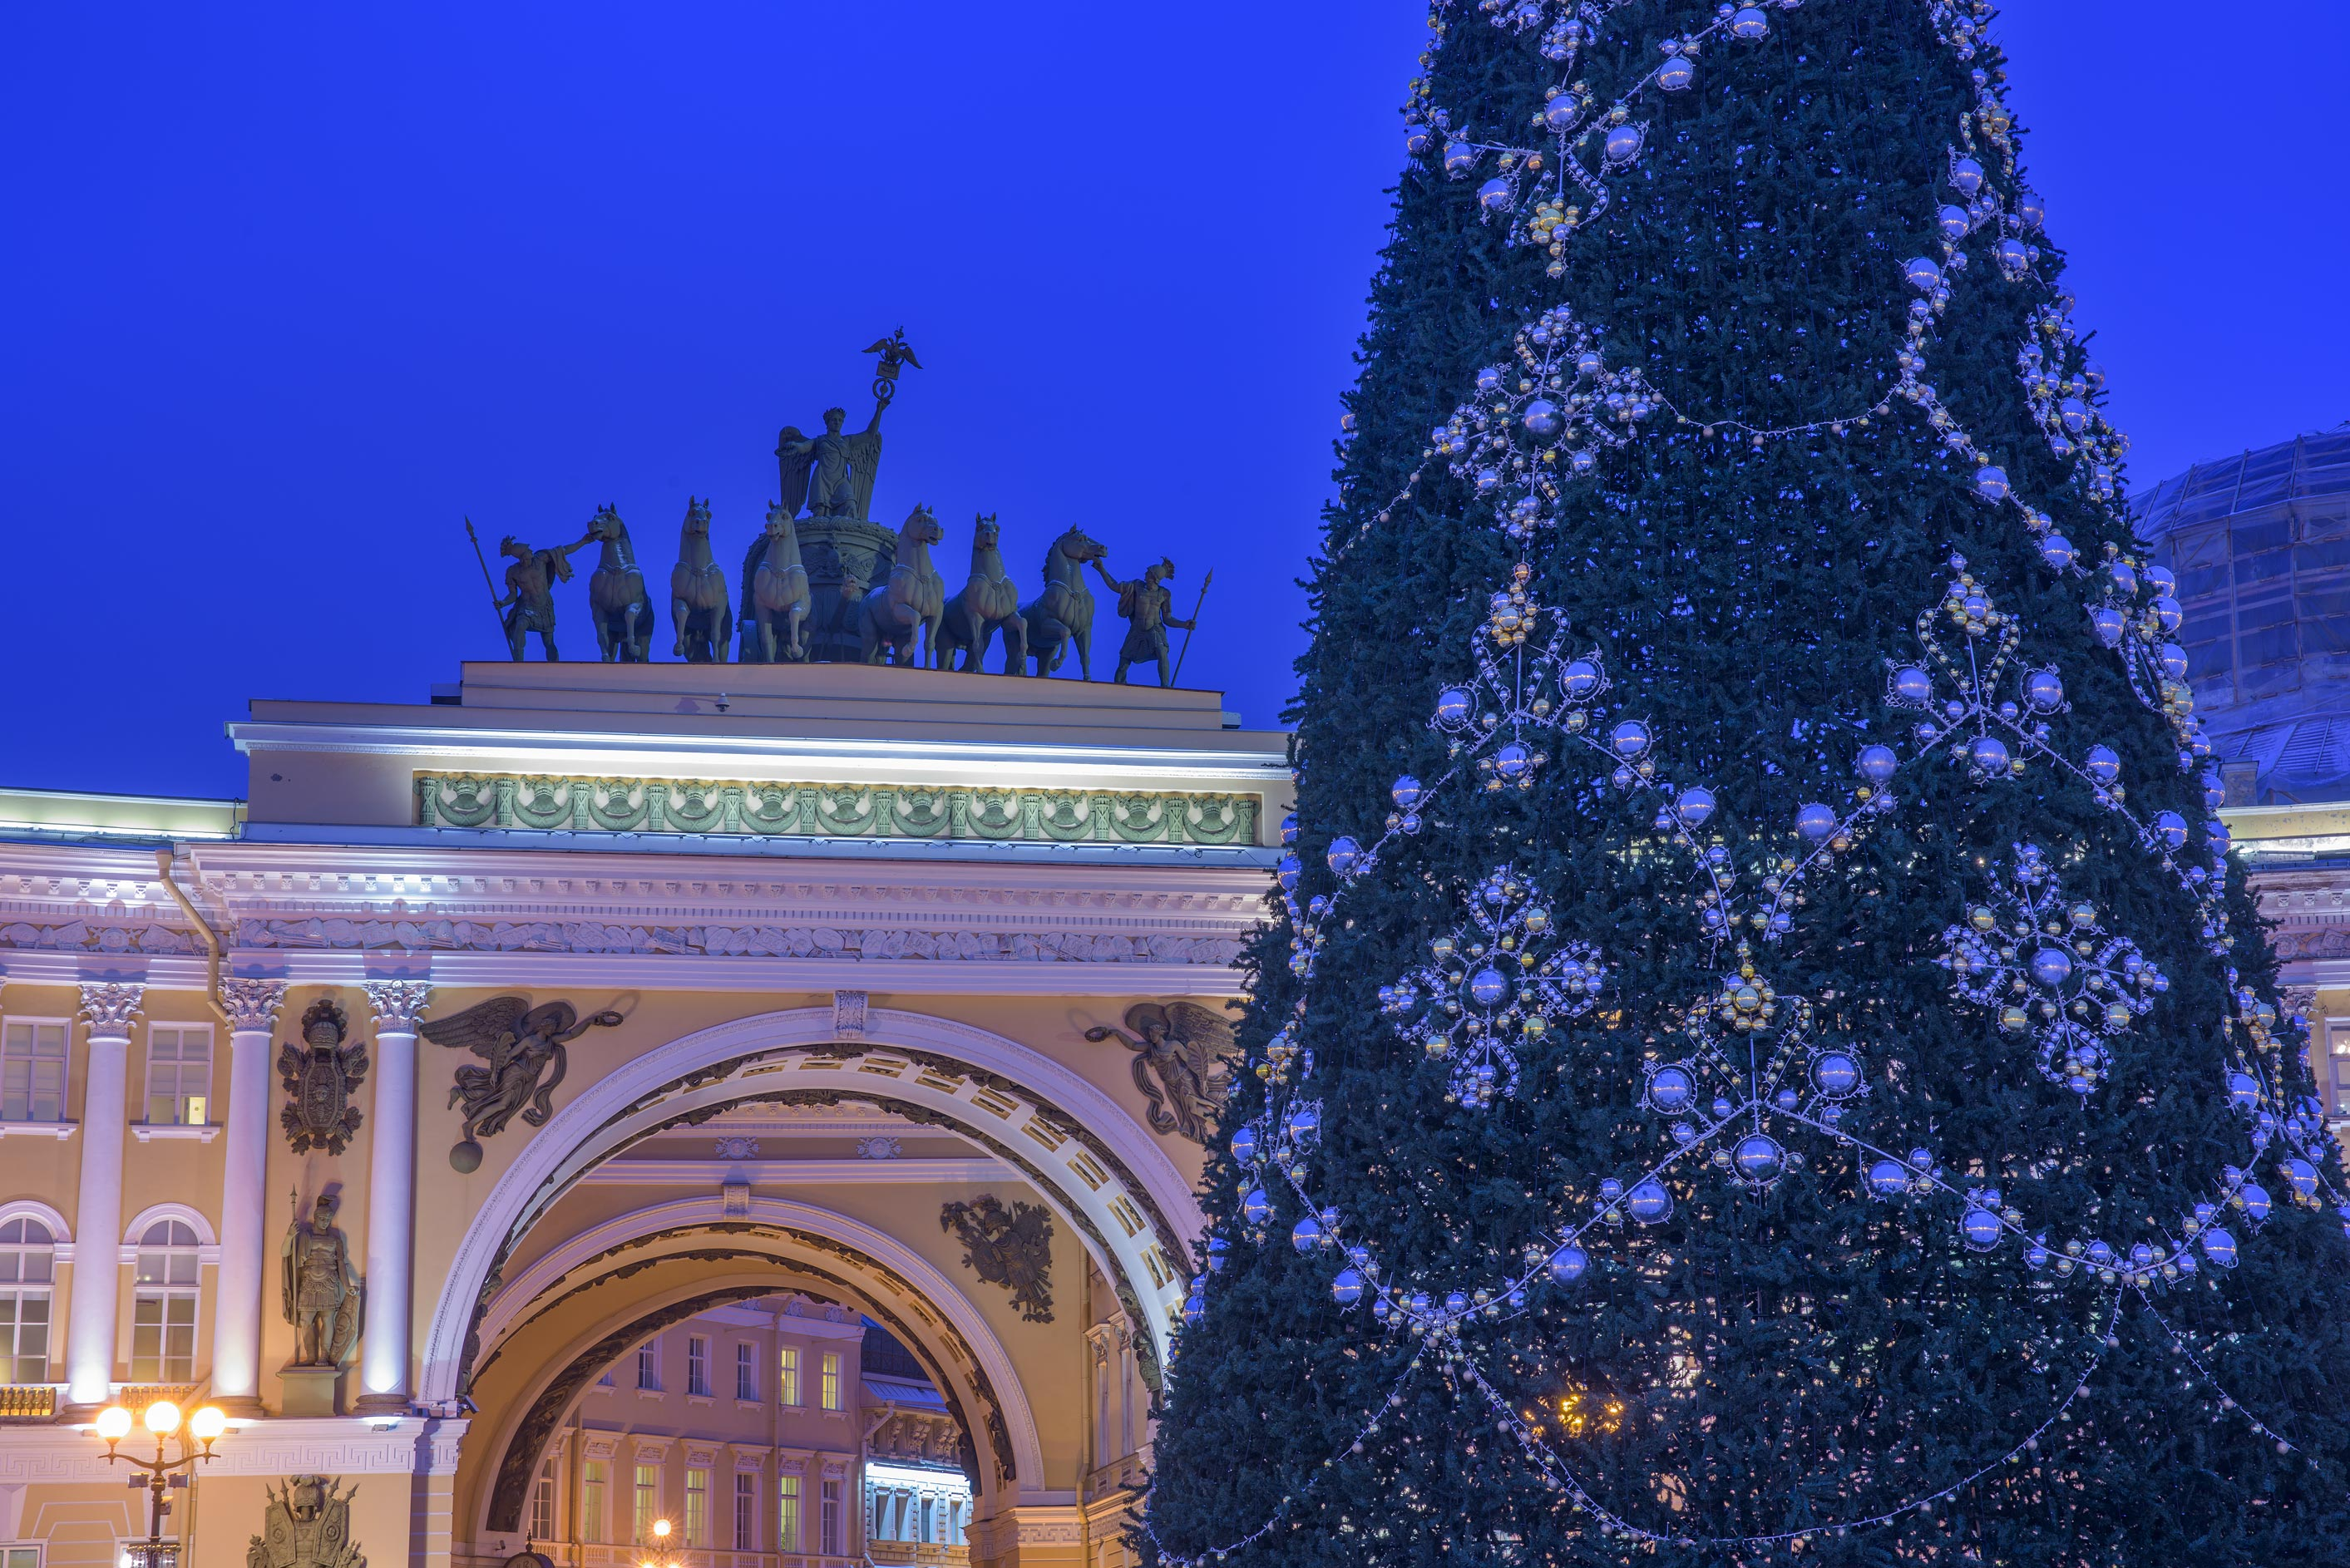 Arch of General Staff and a Christmas tree at morning. St.Petersburg, Russia